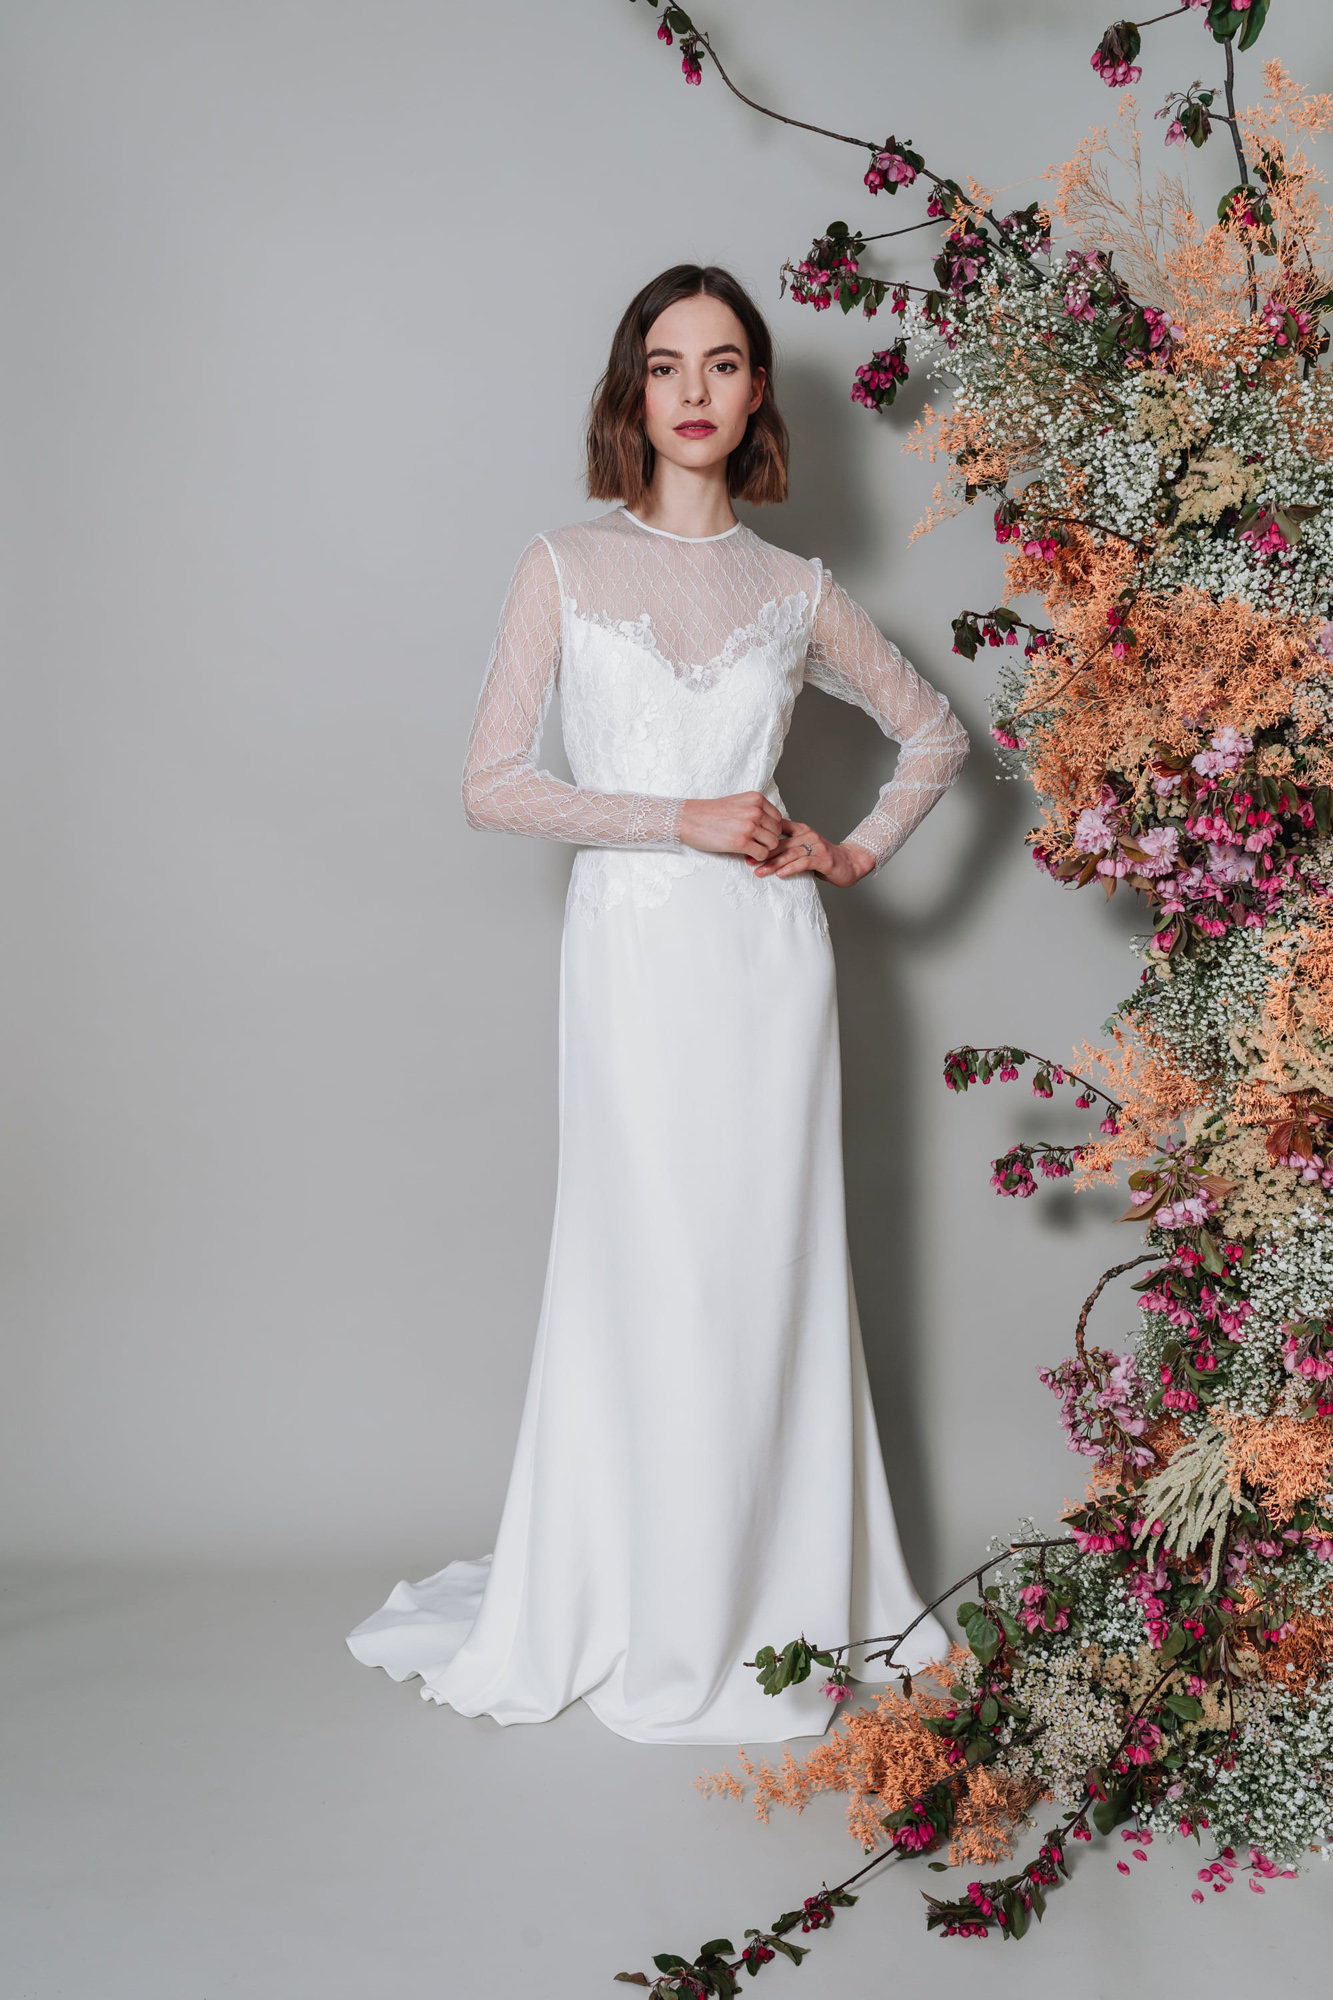 Kate-Beaumont-Sheffield-Geranium-Applique-Lace-Silk-Modern-Minimal-Long-Sleeved-Wedding-Gown-3.jpg